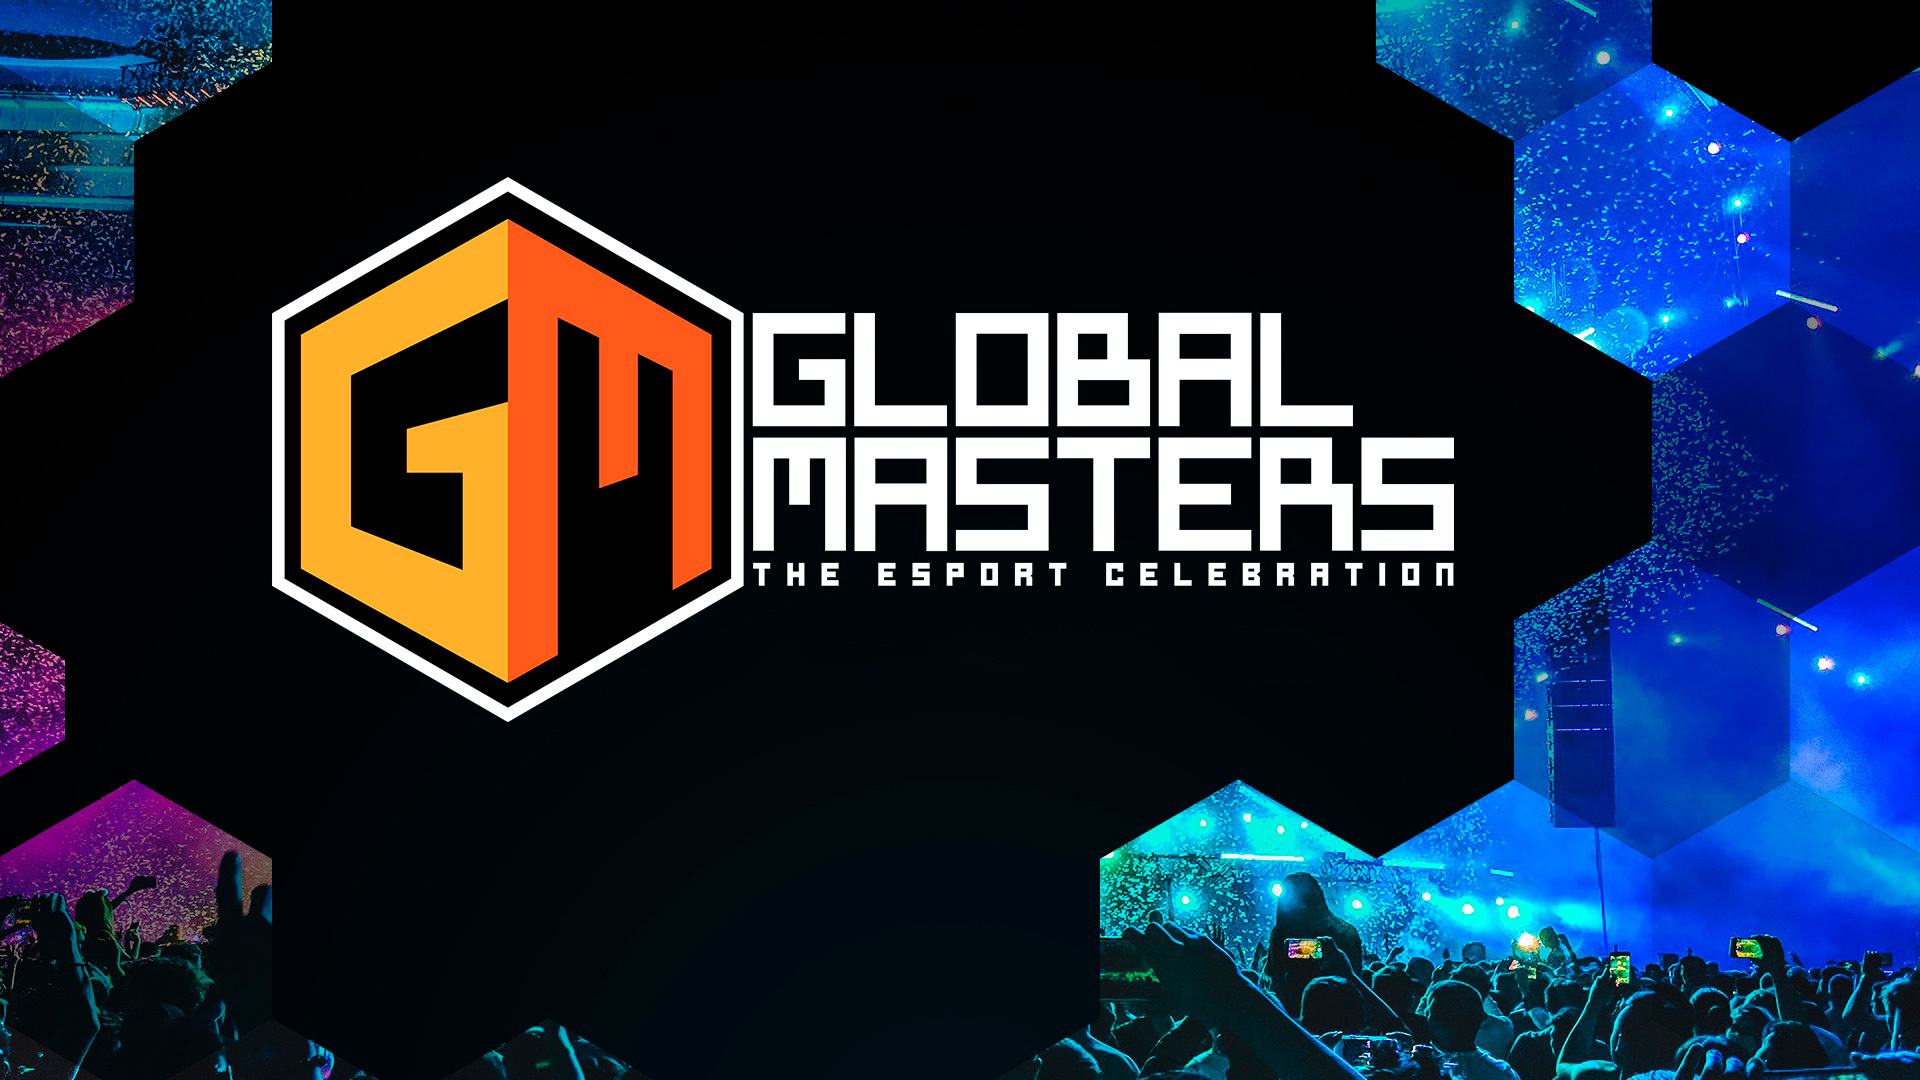 StarLadder to host esports stage of Global Masters 2020